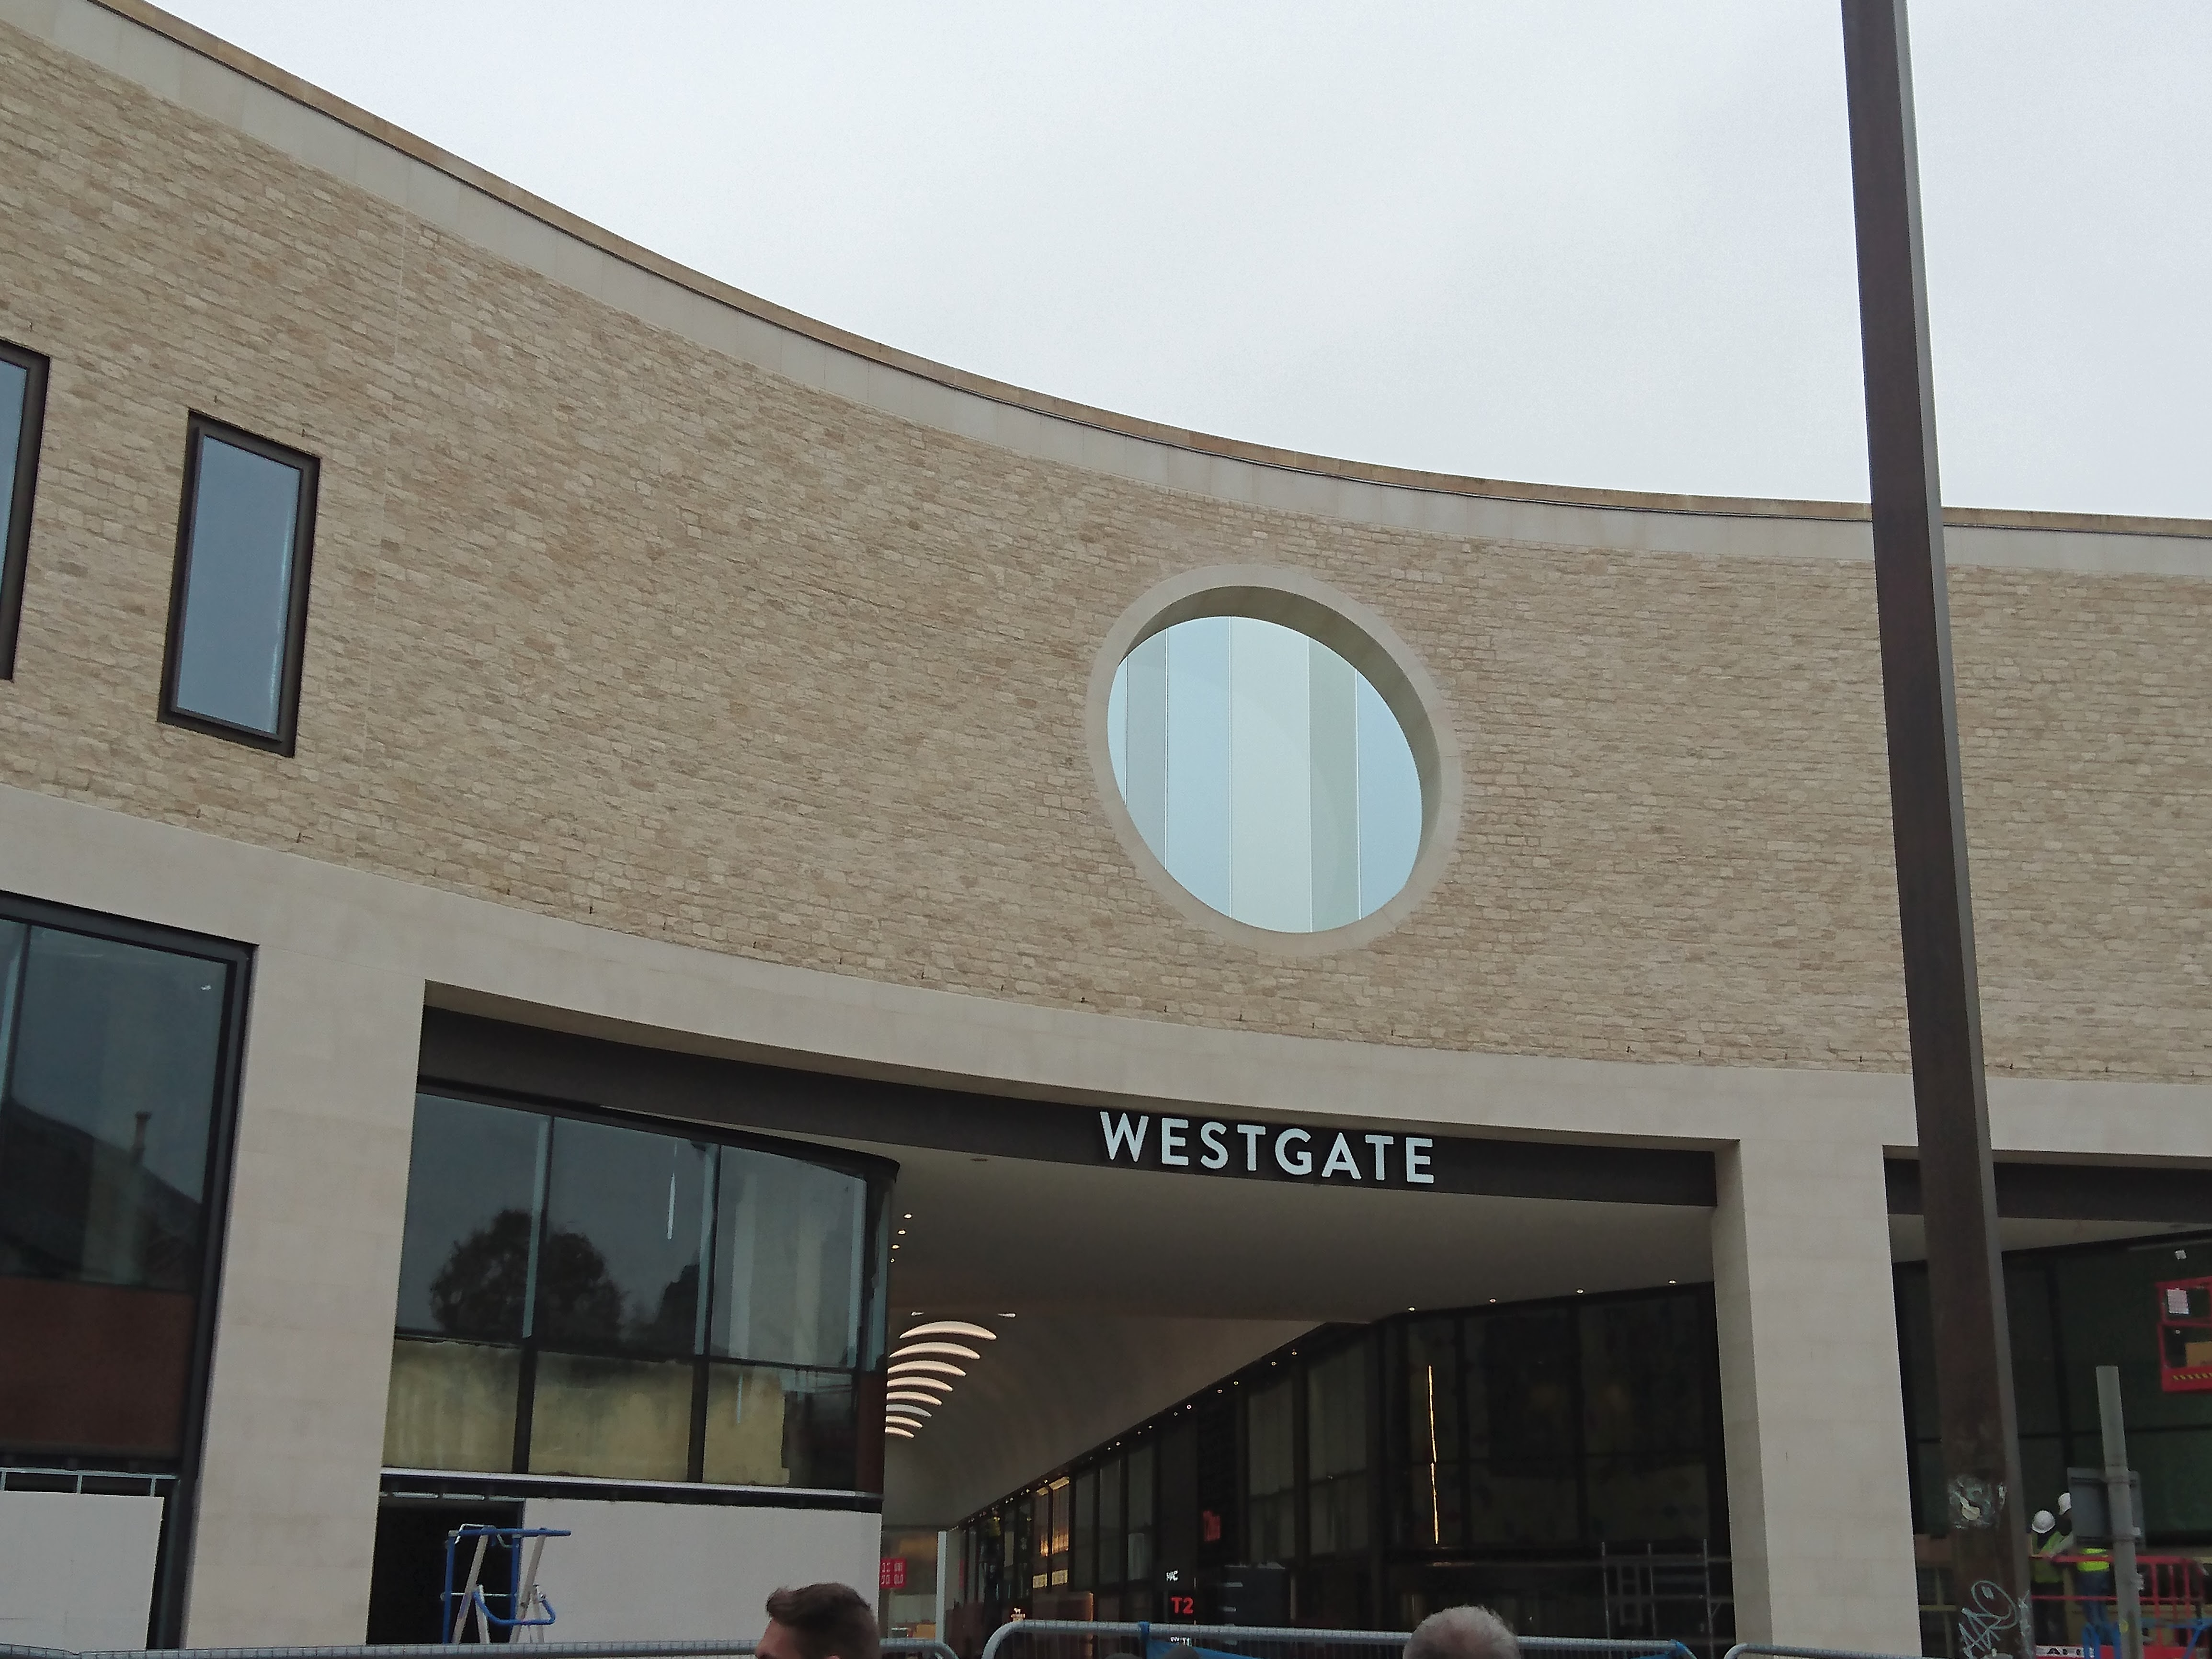 Oxford Westgate Restaurants Bars Cafes Opening Soon